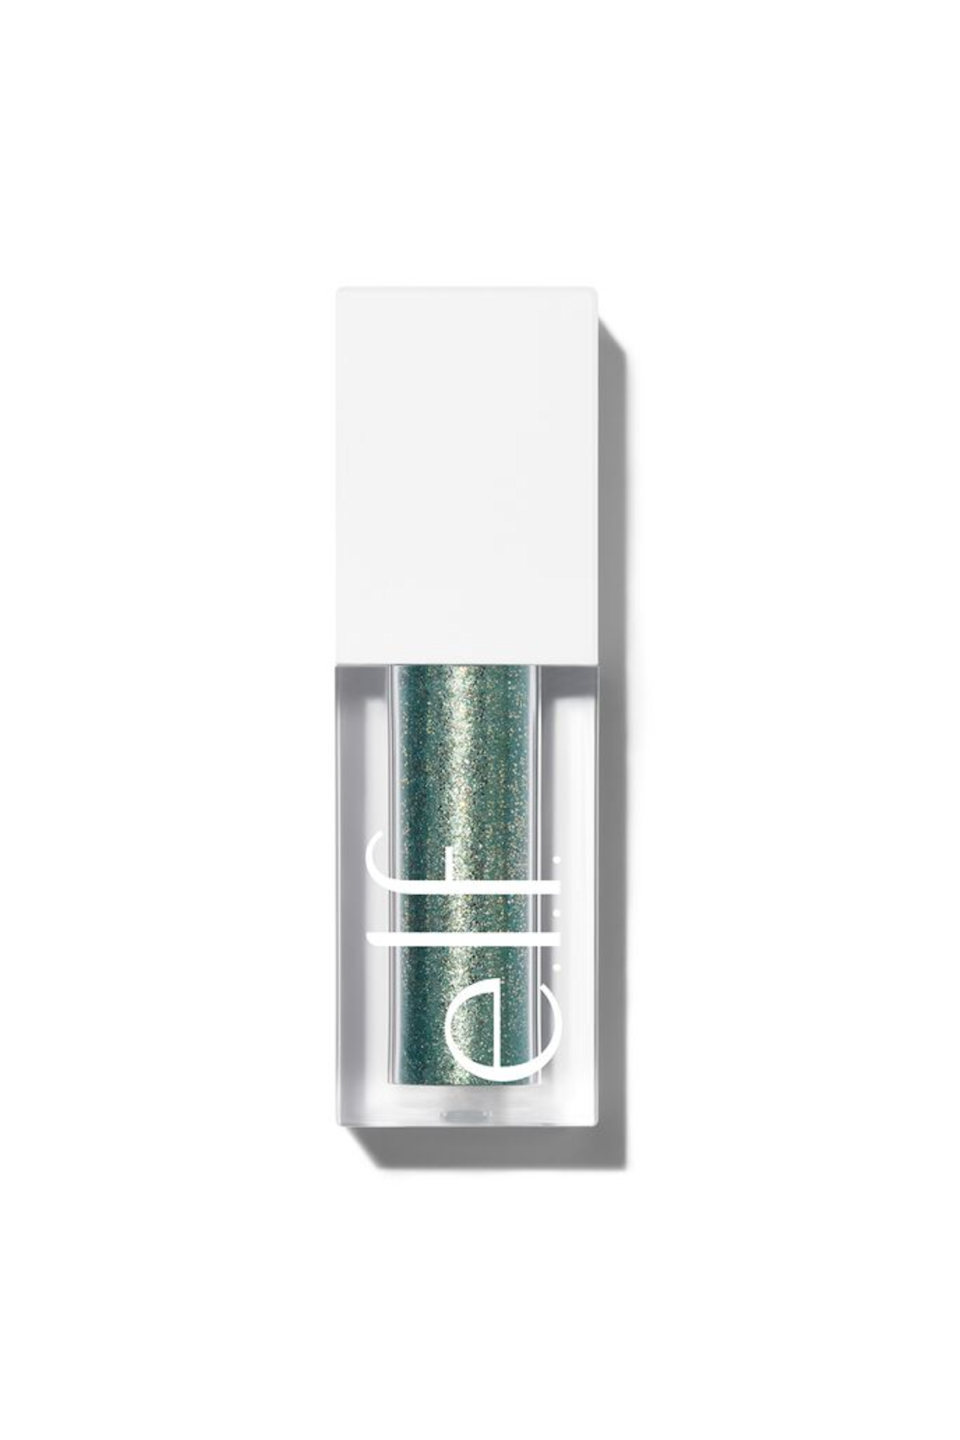 """<p><strong>e.l.f. Cosmetics</strong></p><p>ulta.com</p><p><strong>$5.00</strong></p><p><a href=""""https://go.redirectingat.com?id=74968X1596630&url=https%3A%2F%2Fwww.ulta.com%2Fp%2Fliquid-glitter-eyeshadow-pimprod2013001&sref=https%3A%2F%2Fwww.seventeen.com%2Fbeauty%2Fmakeup-skincare%2Fg36866431%2Fbest-elf-makeup-skincare-products%2F"""" rel=""""nofollow noopener"""" target=""""_blank"""" data-ylk=""""slk:Shop Now"""" class=""""link rapid-noclick-resp"""">Shop Now</a></p><p>Need a quick wash of color with minimal effort? These Liquid Glitter Eyeshadows will add some ✨glitz✨ to any look in seconds. Along with this gorgeous green shade, Mermaid Shimmy, there are eight more shades to choose from.</p>"""